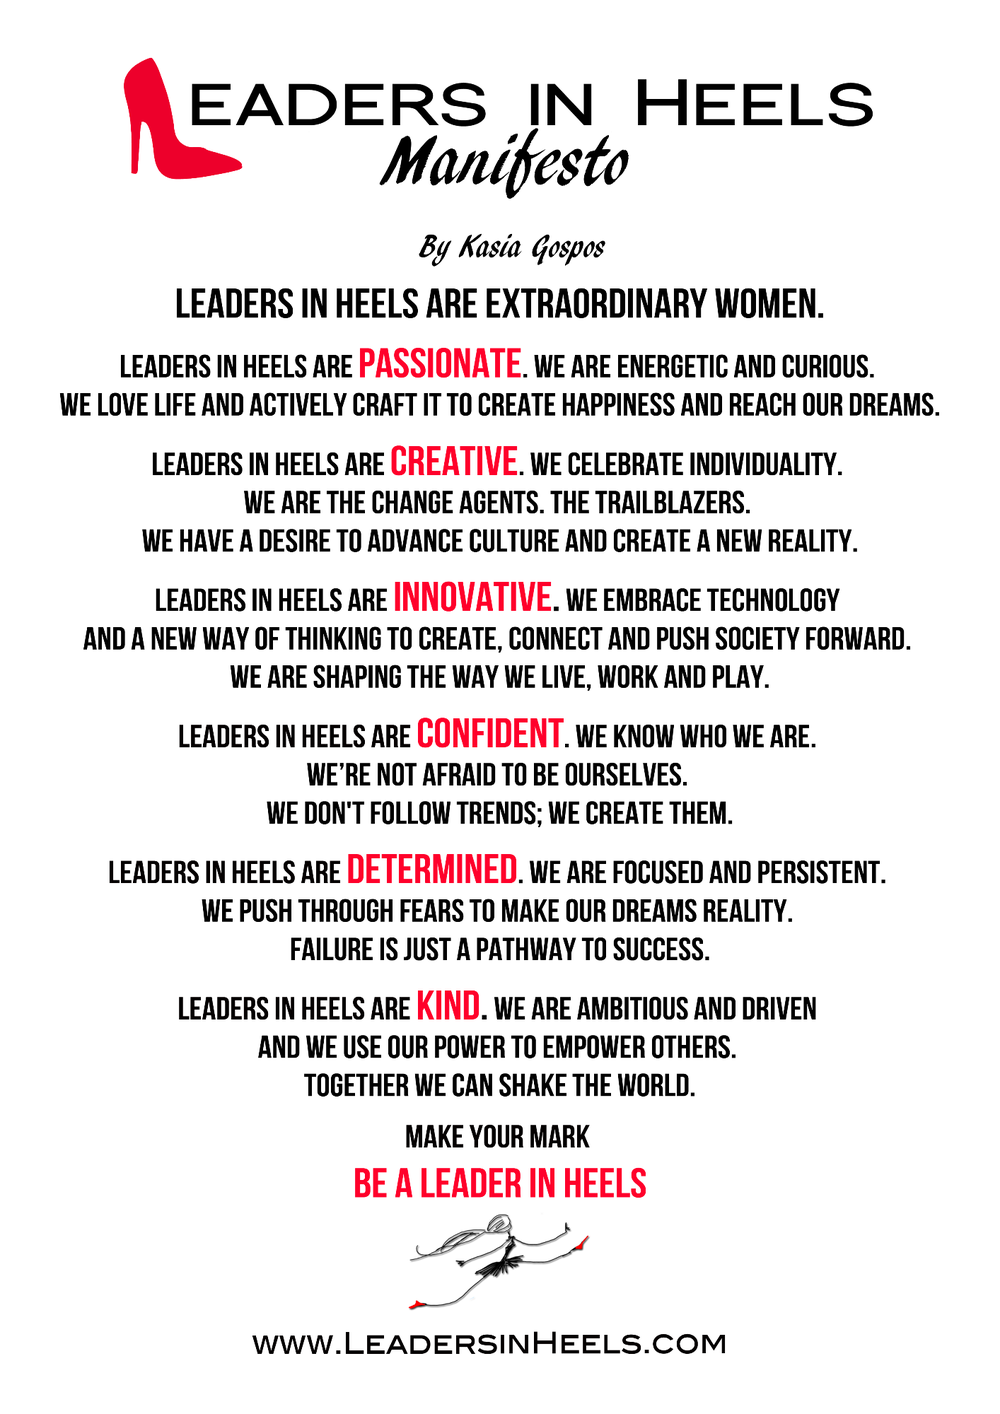 leaders in heels manifesto